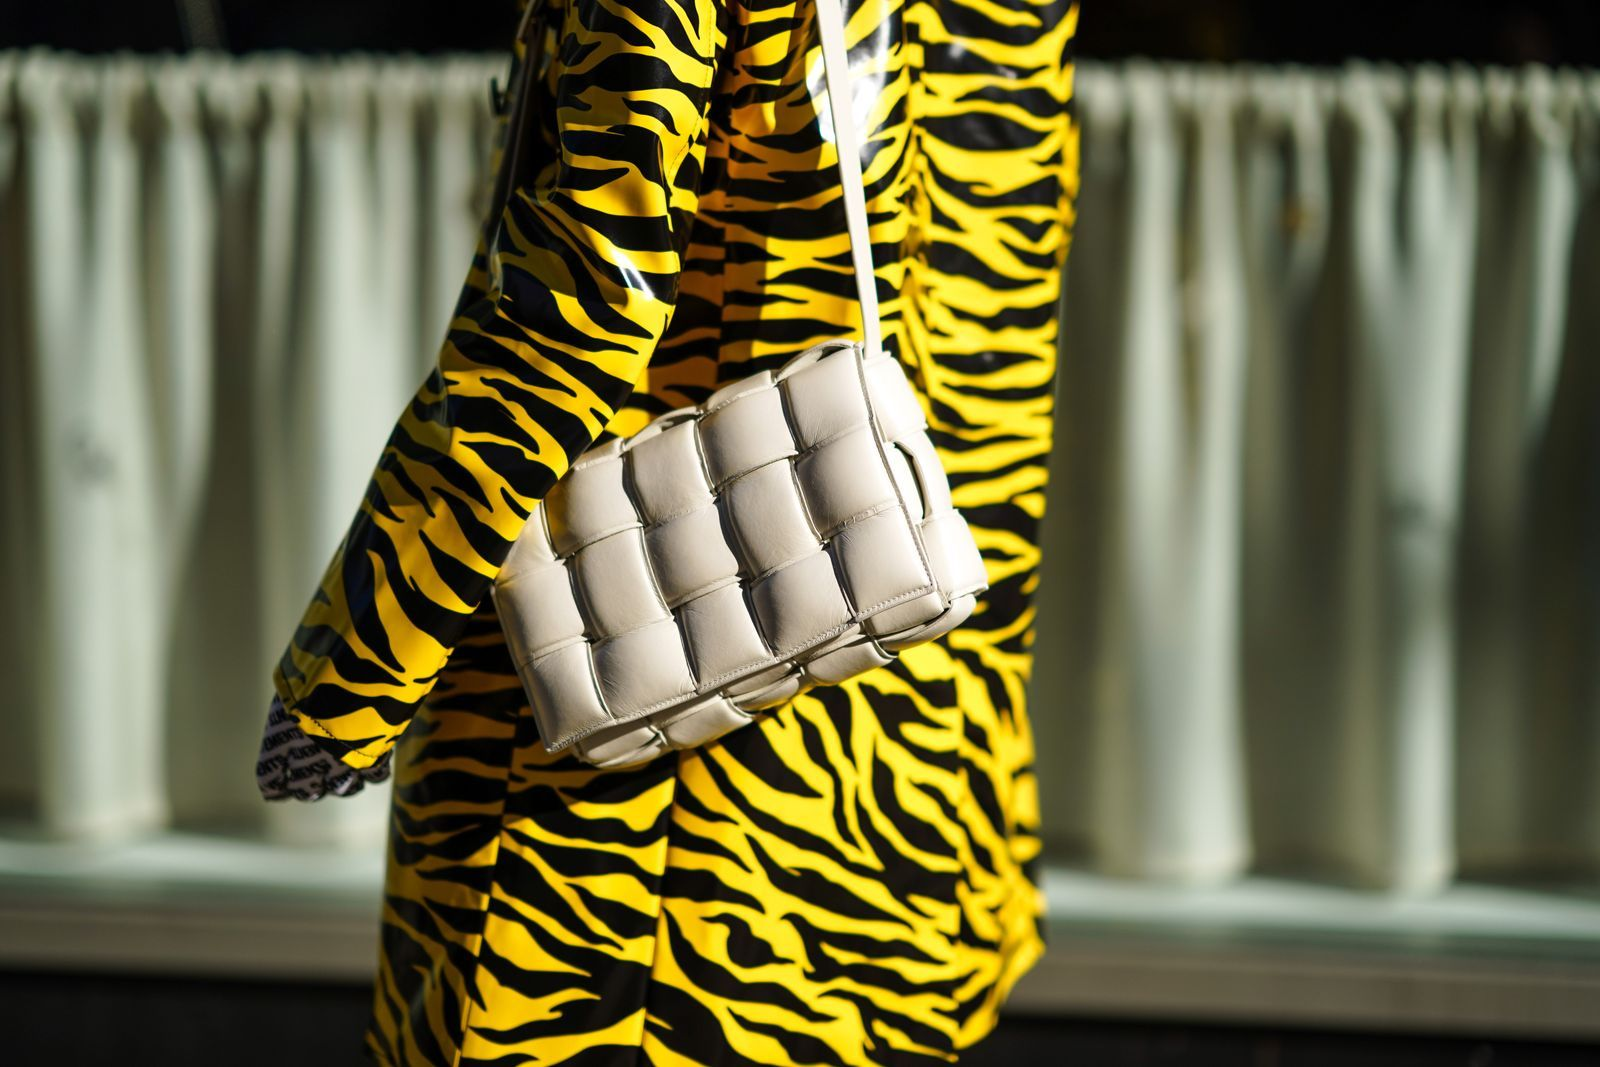 The Most Sought-After Handbag Styles of 2020